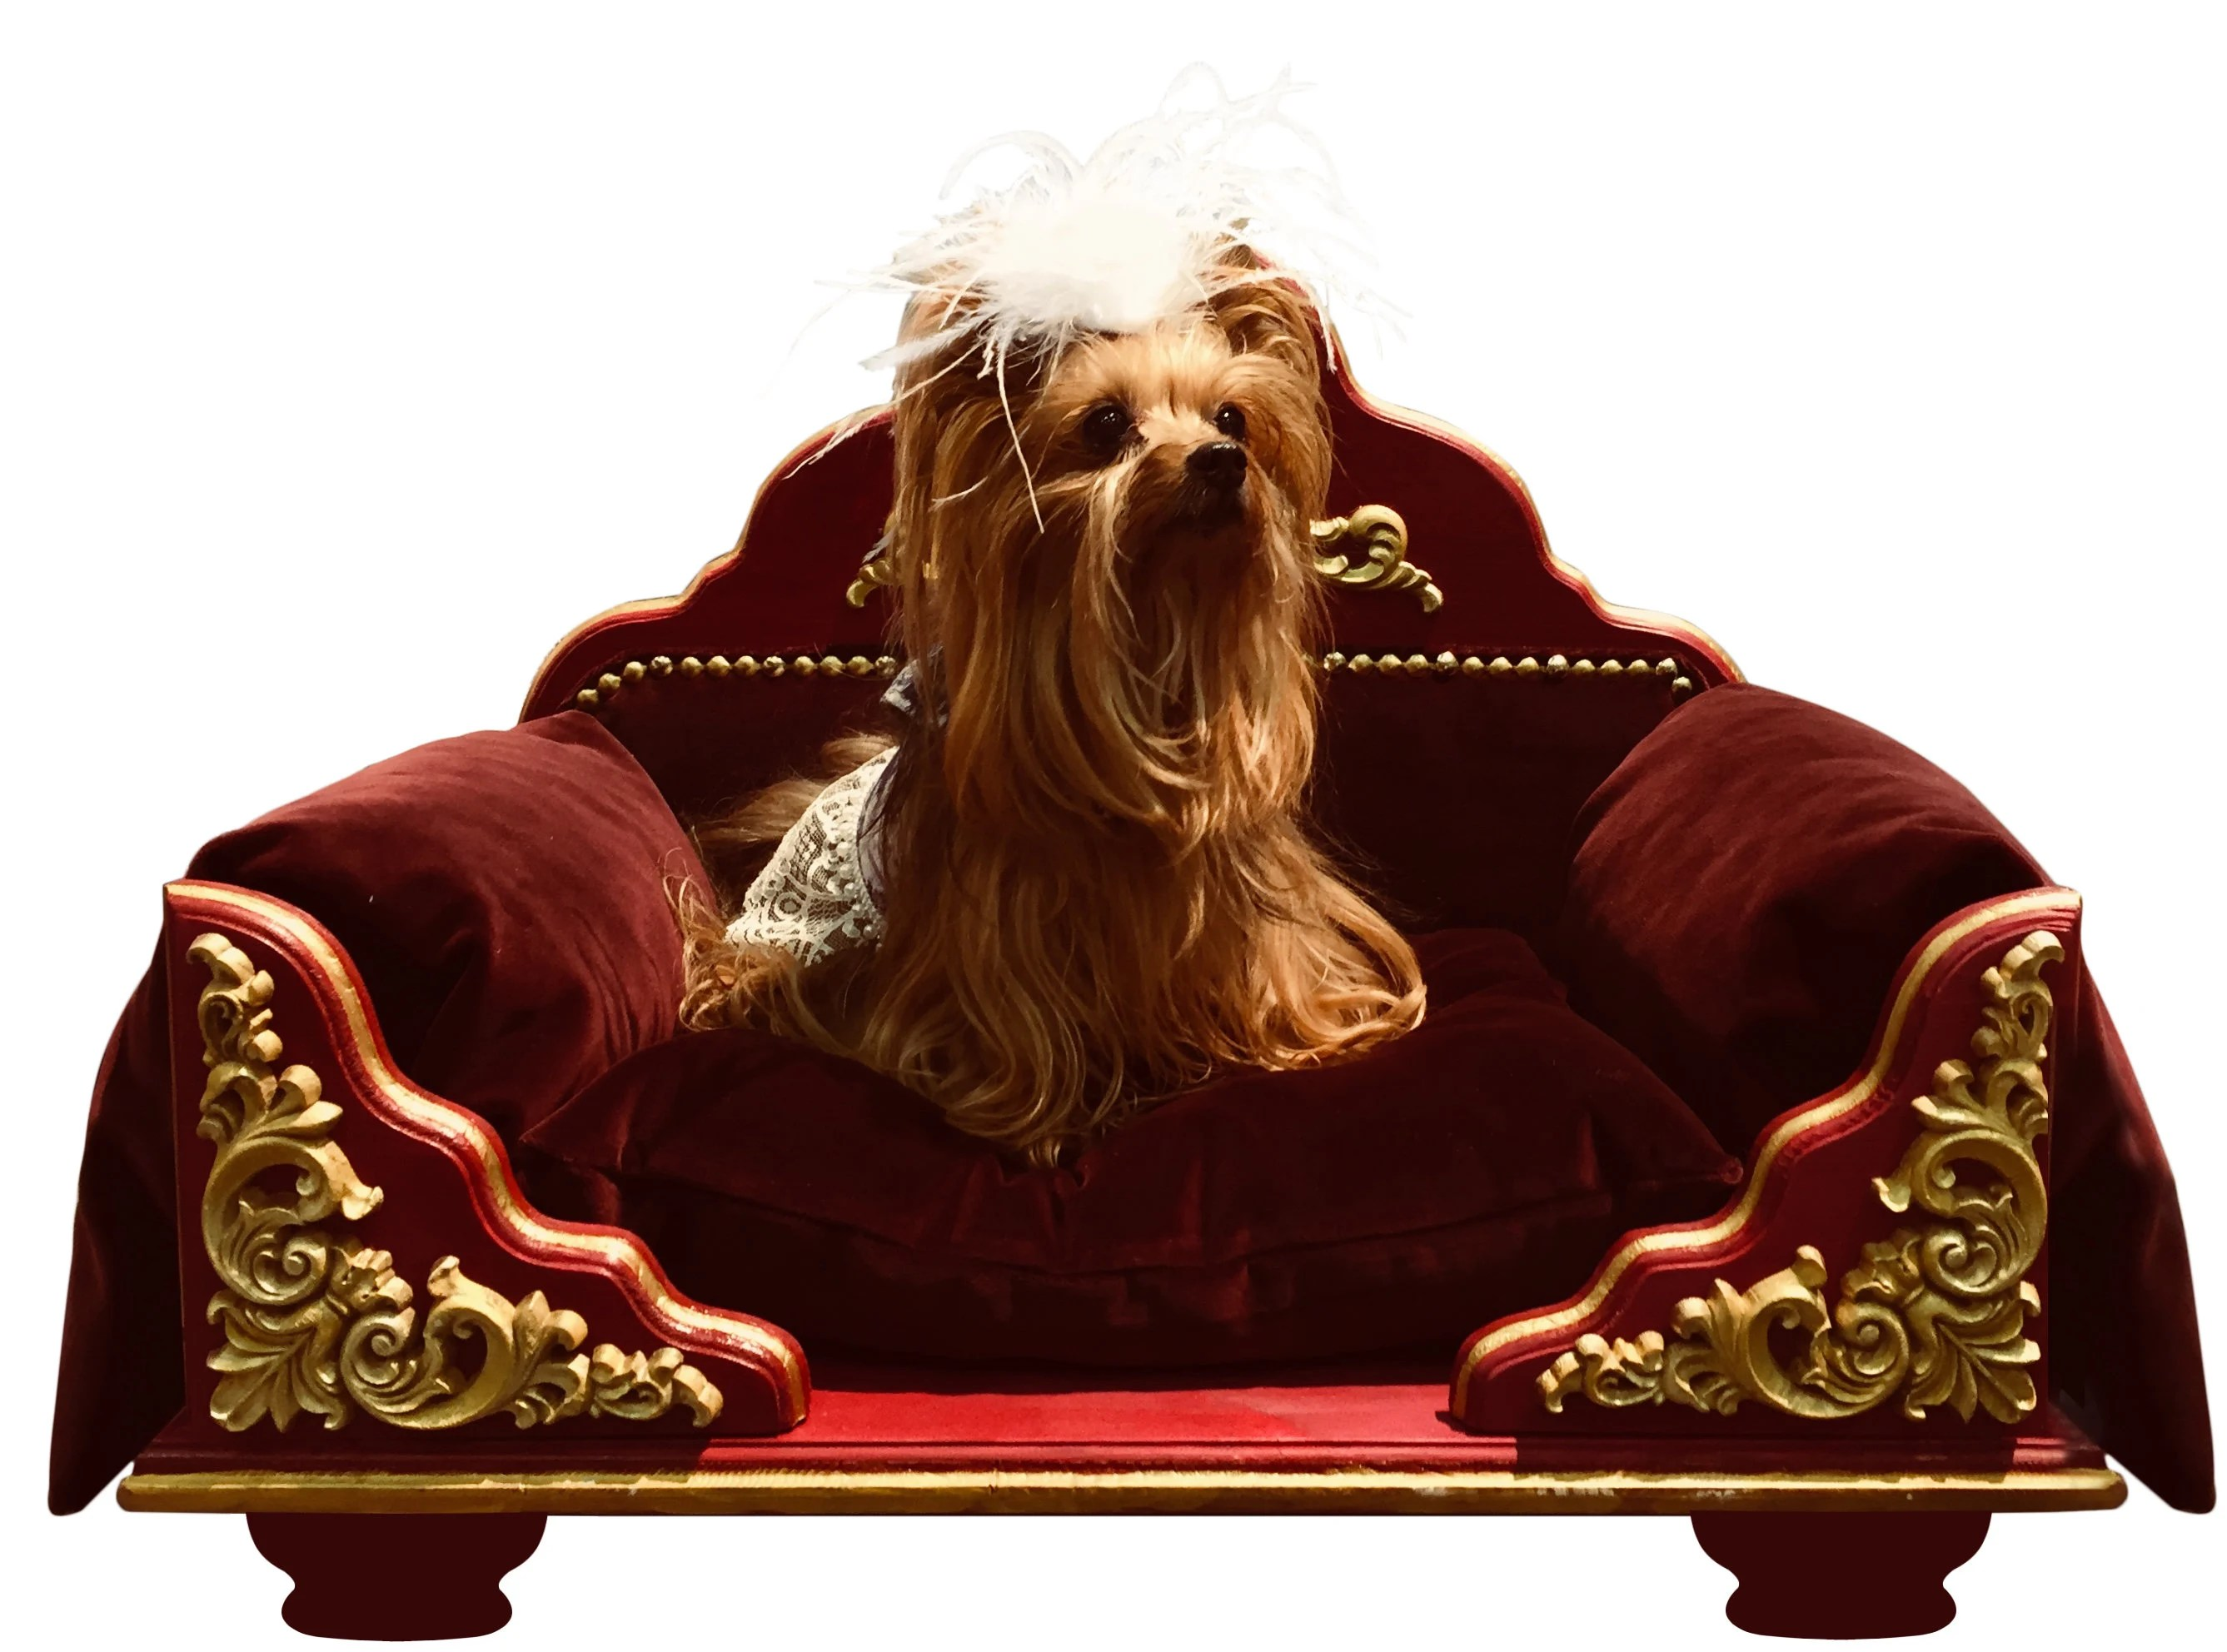 Dog Beds Pet Dog Bed Furniture Dog Bed Pet Bed Romantic Luxury Pet Bed Designer Pet Bed Wood